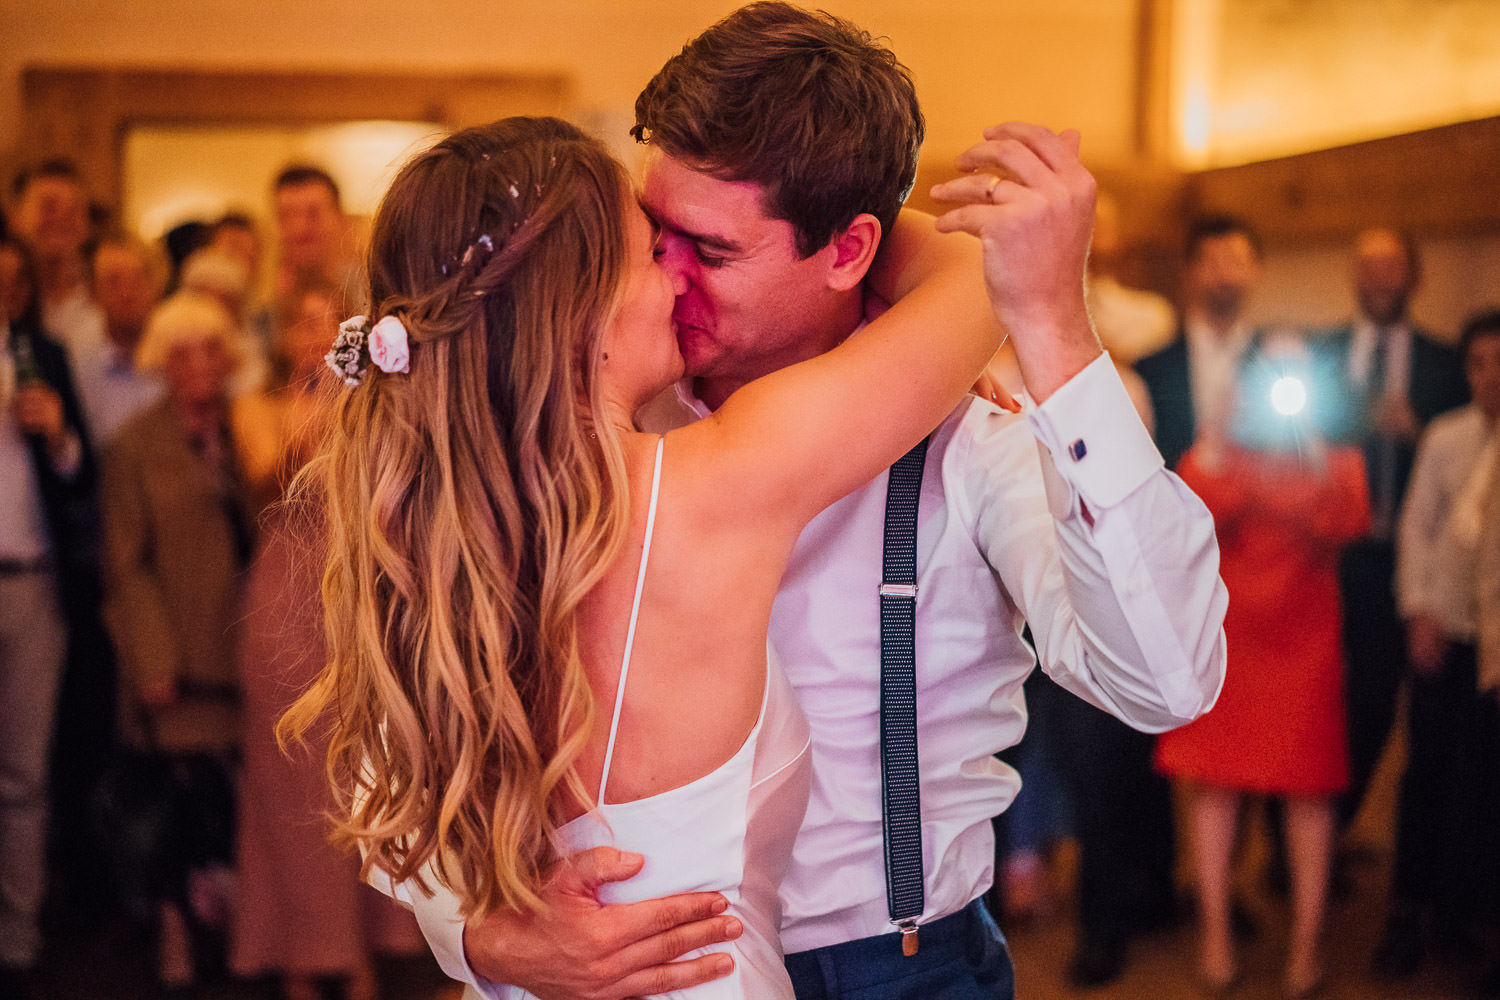 first dance in oxleaze barn wedding by creative london wedding photographer the shannons photography